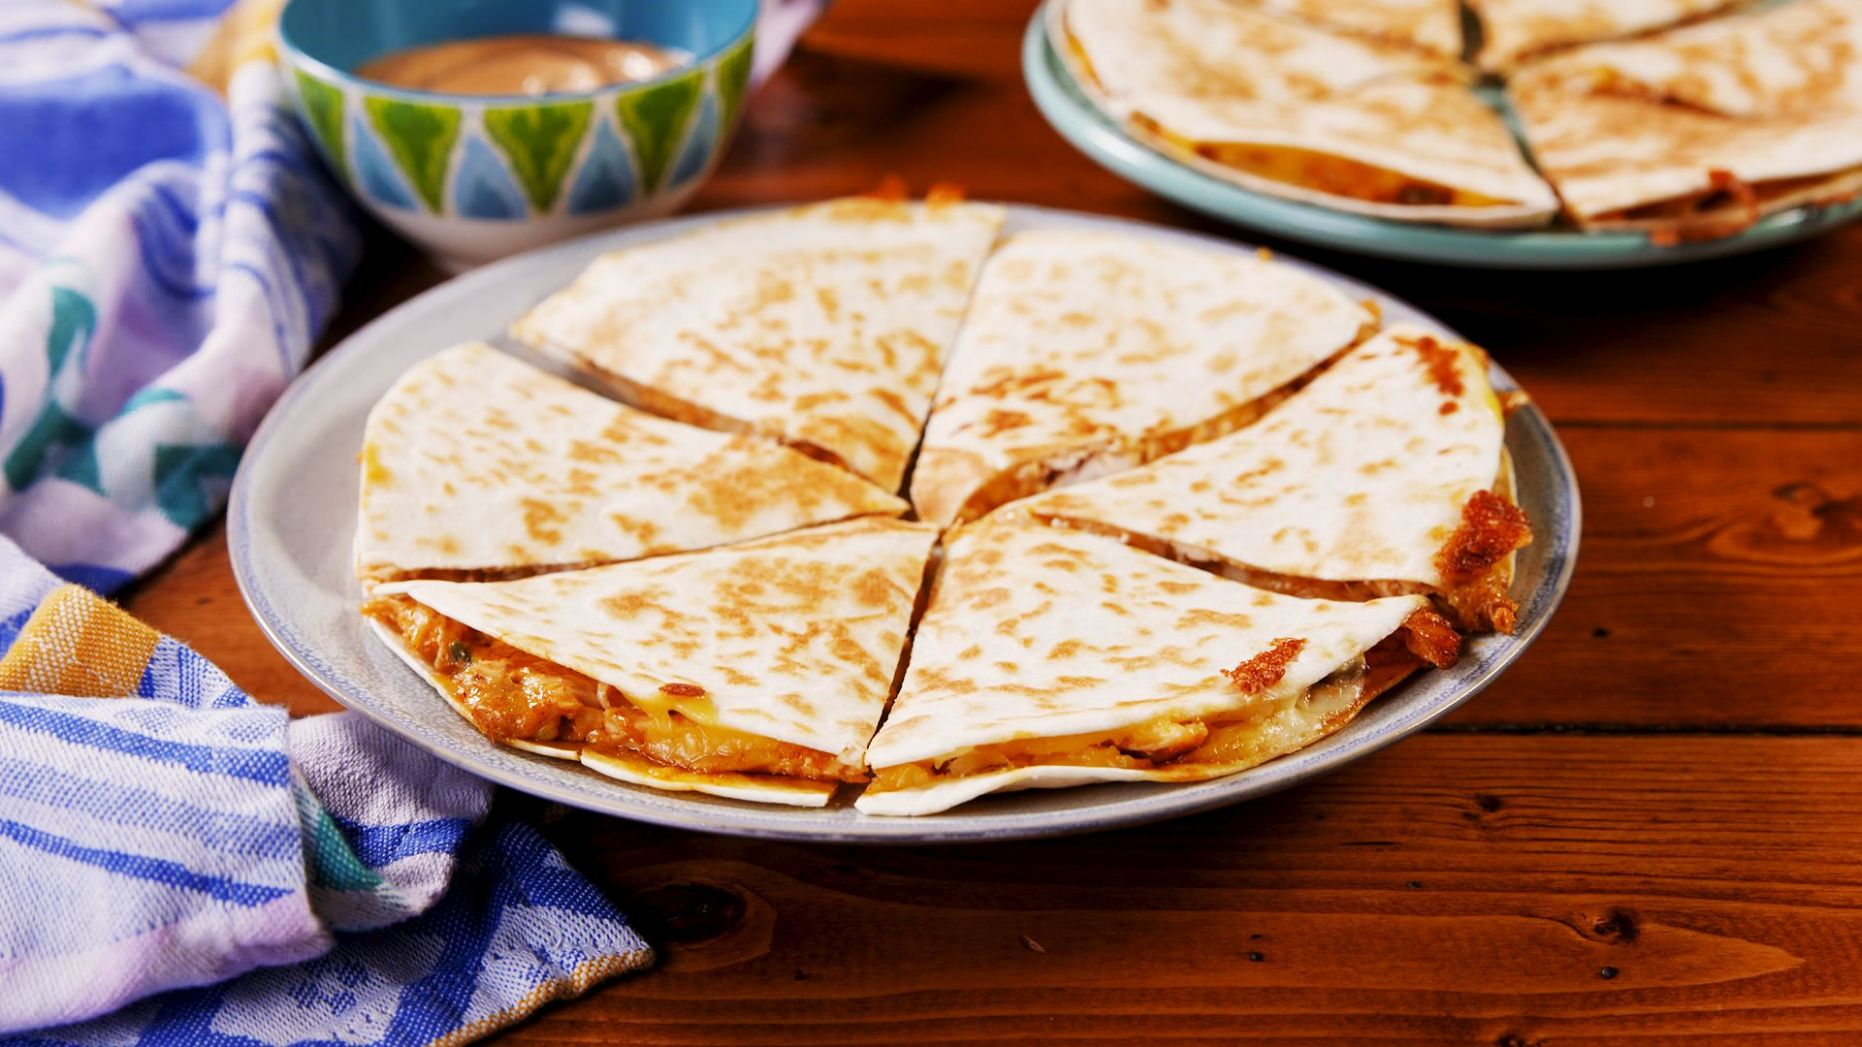 Copycat Taco Bell Quesadilla - Recipe Chicken Quesadilla Taco Bell